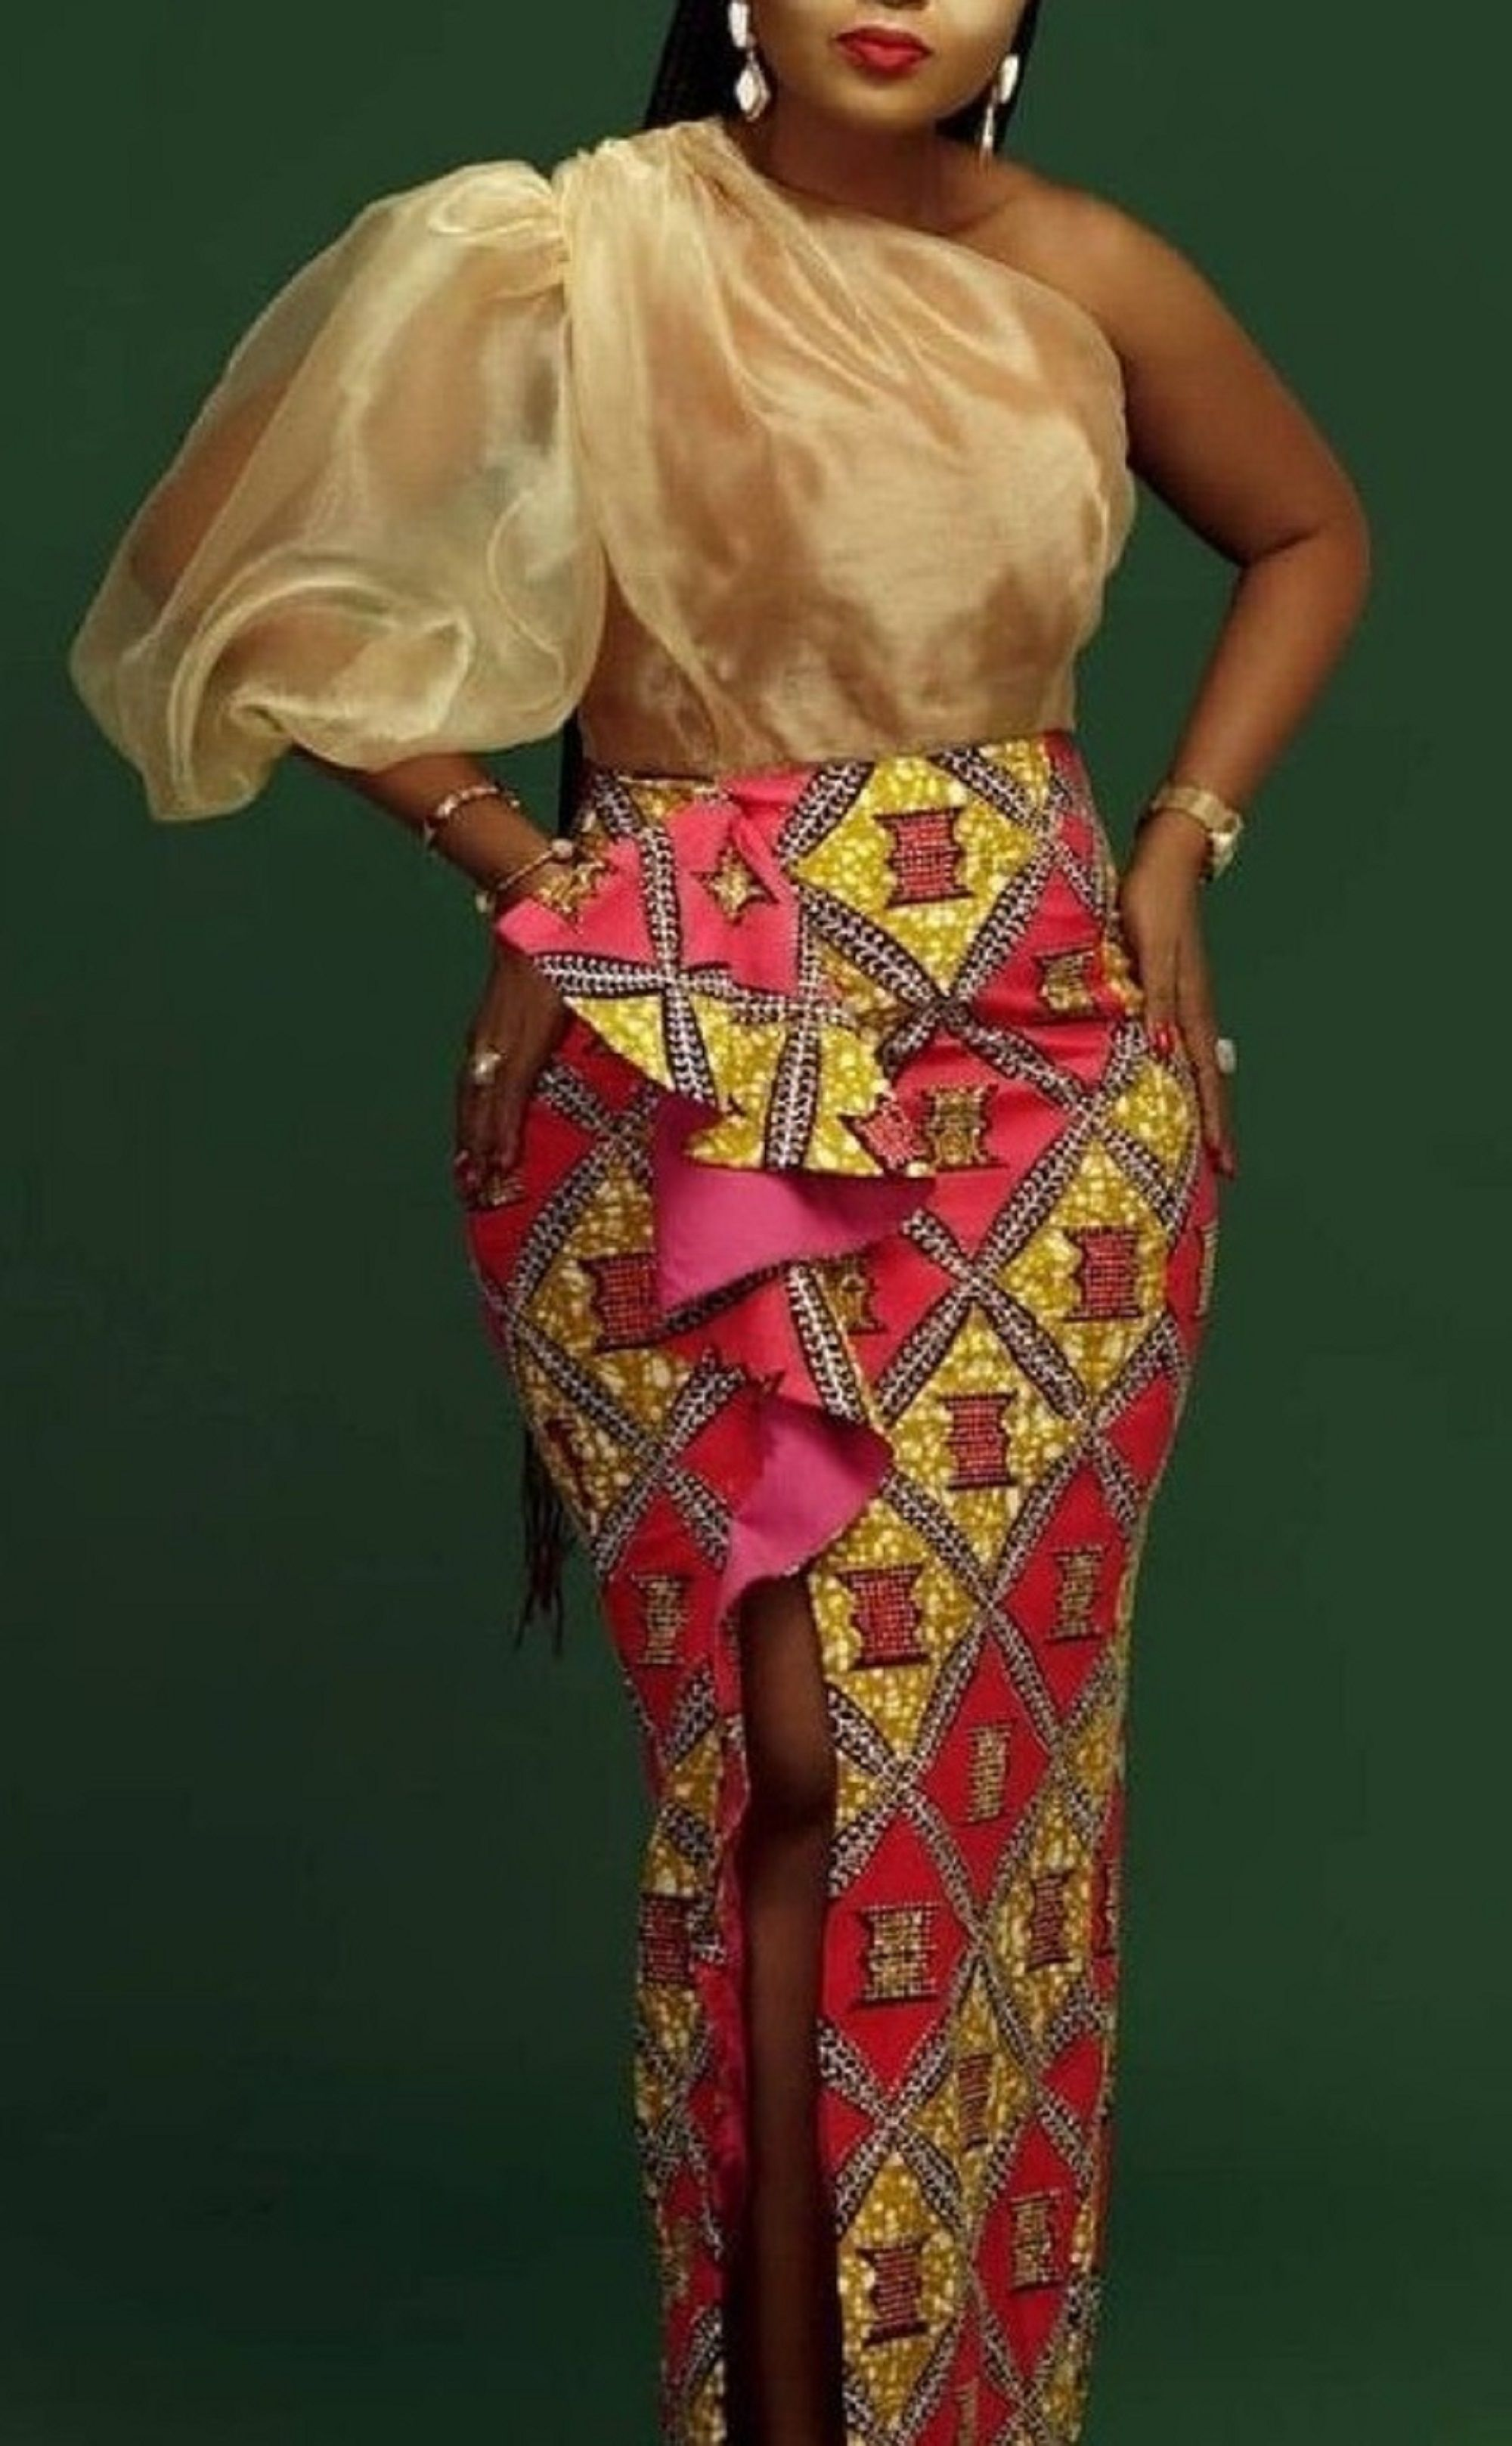 Classic Party Ankara Gown #afrikanischerstil Make a statement and look fabulous with this unique hand made quality Africa wax print. This Item is currently on MADE TO ORDER Production time is around 2 weeks to produce and 3-5 business days to deliver. Shipping is done through DHL express. Sizing: Kindly check our size chart to guide you in selecting a size that fits you best. You can also send the following measurements in order to ensure a perfect fit: Shoulder to shoulder Shoulder to waist Sho #afrikanischerstil